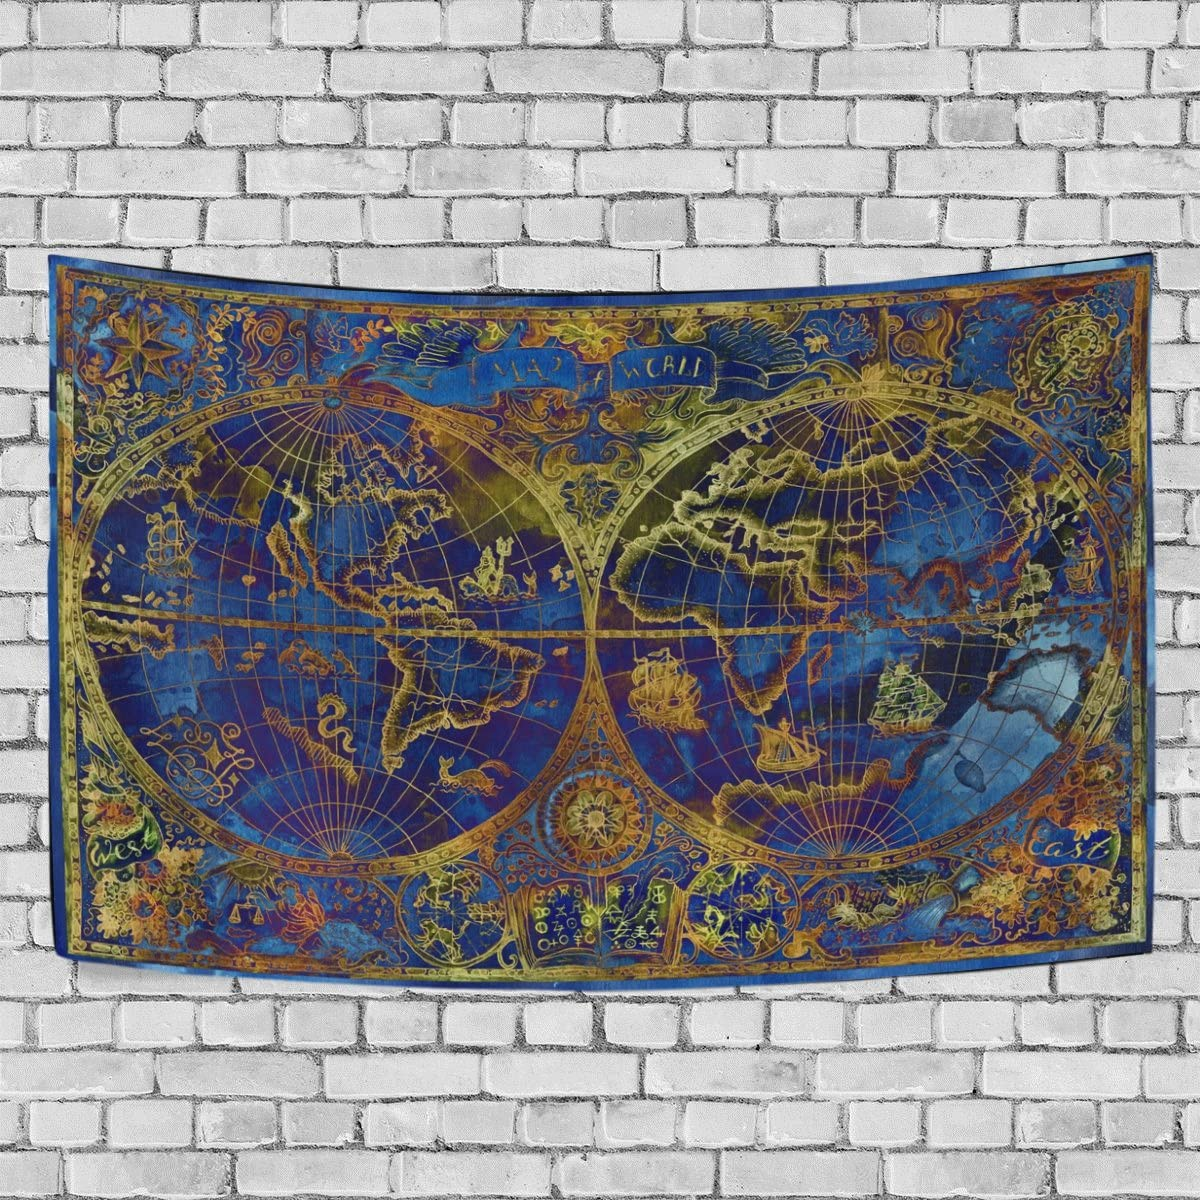 Naanle 60 x 90 Inches Tapestries Gorgeous Old World Map Wall Hanging Tapestry Bedspread Throw for Living Room Bedroom Dorm Decor